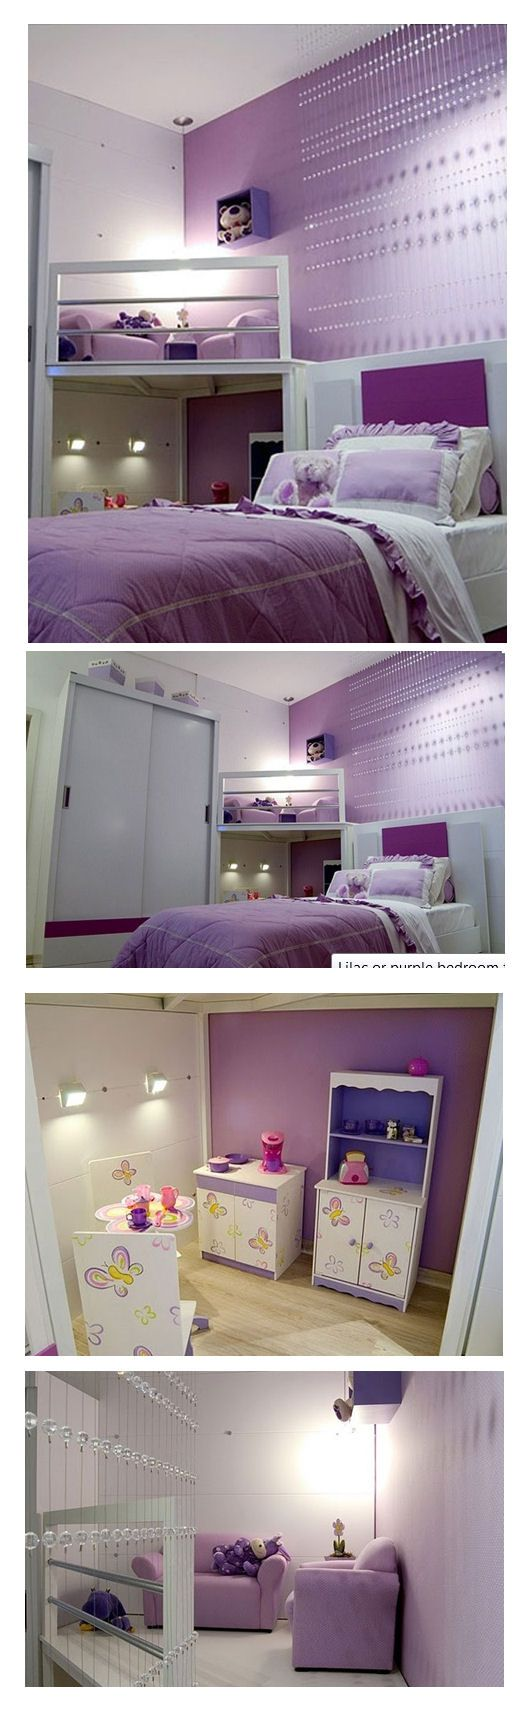 Awesome Bedrooms For Girls 408 best bedroom ideas for teenage girl images on pinterest